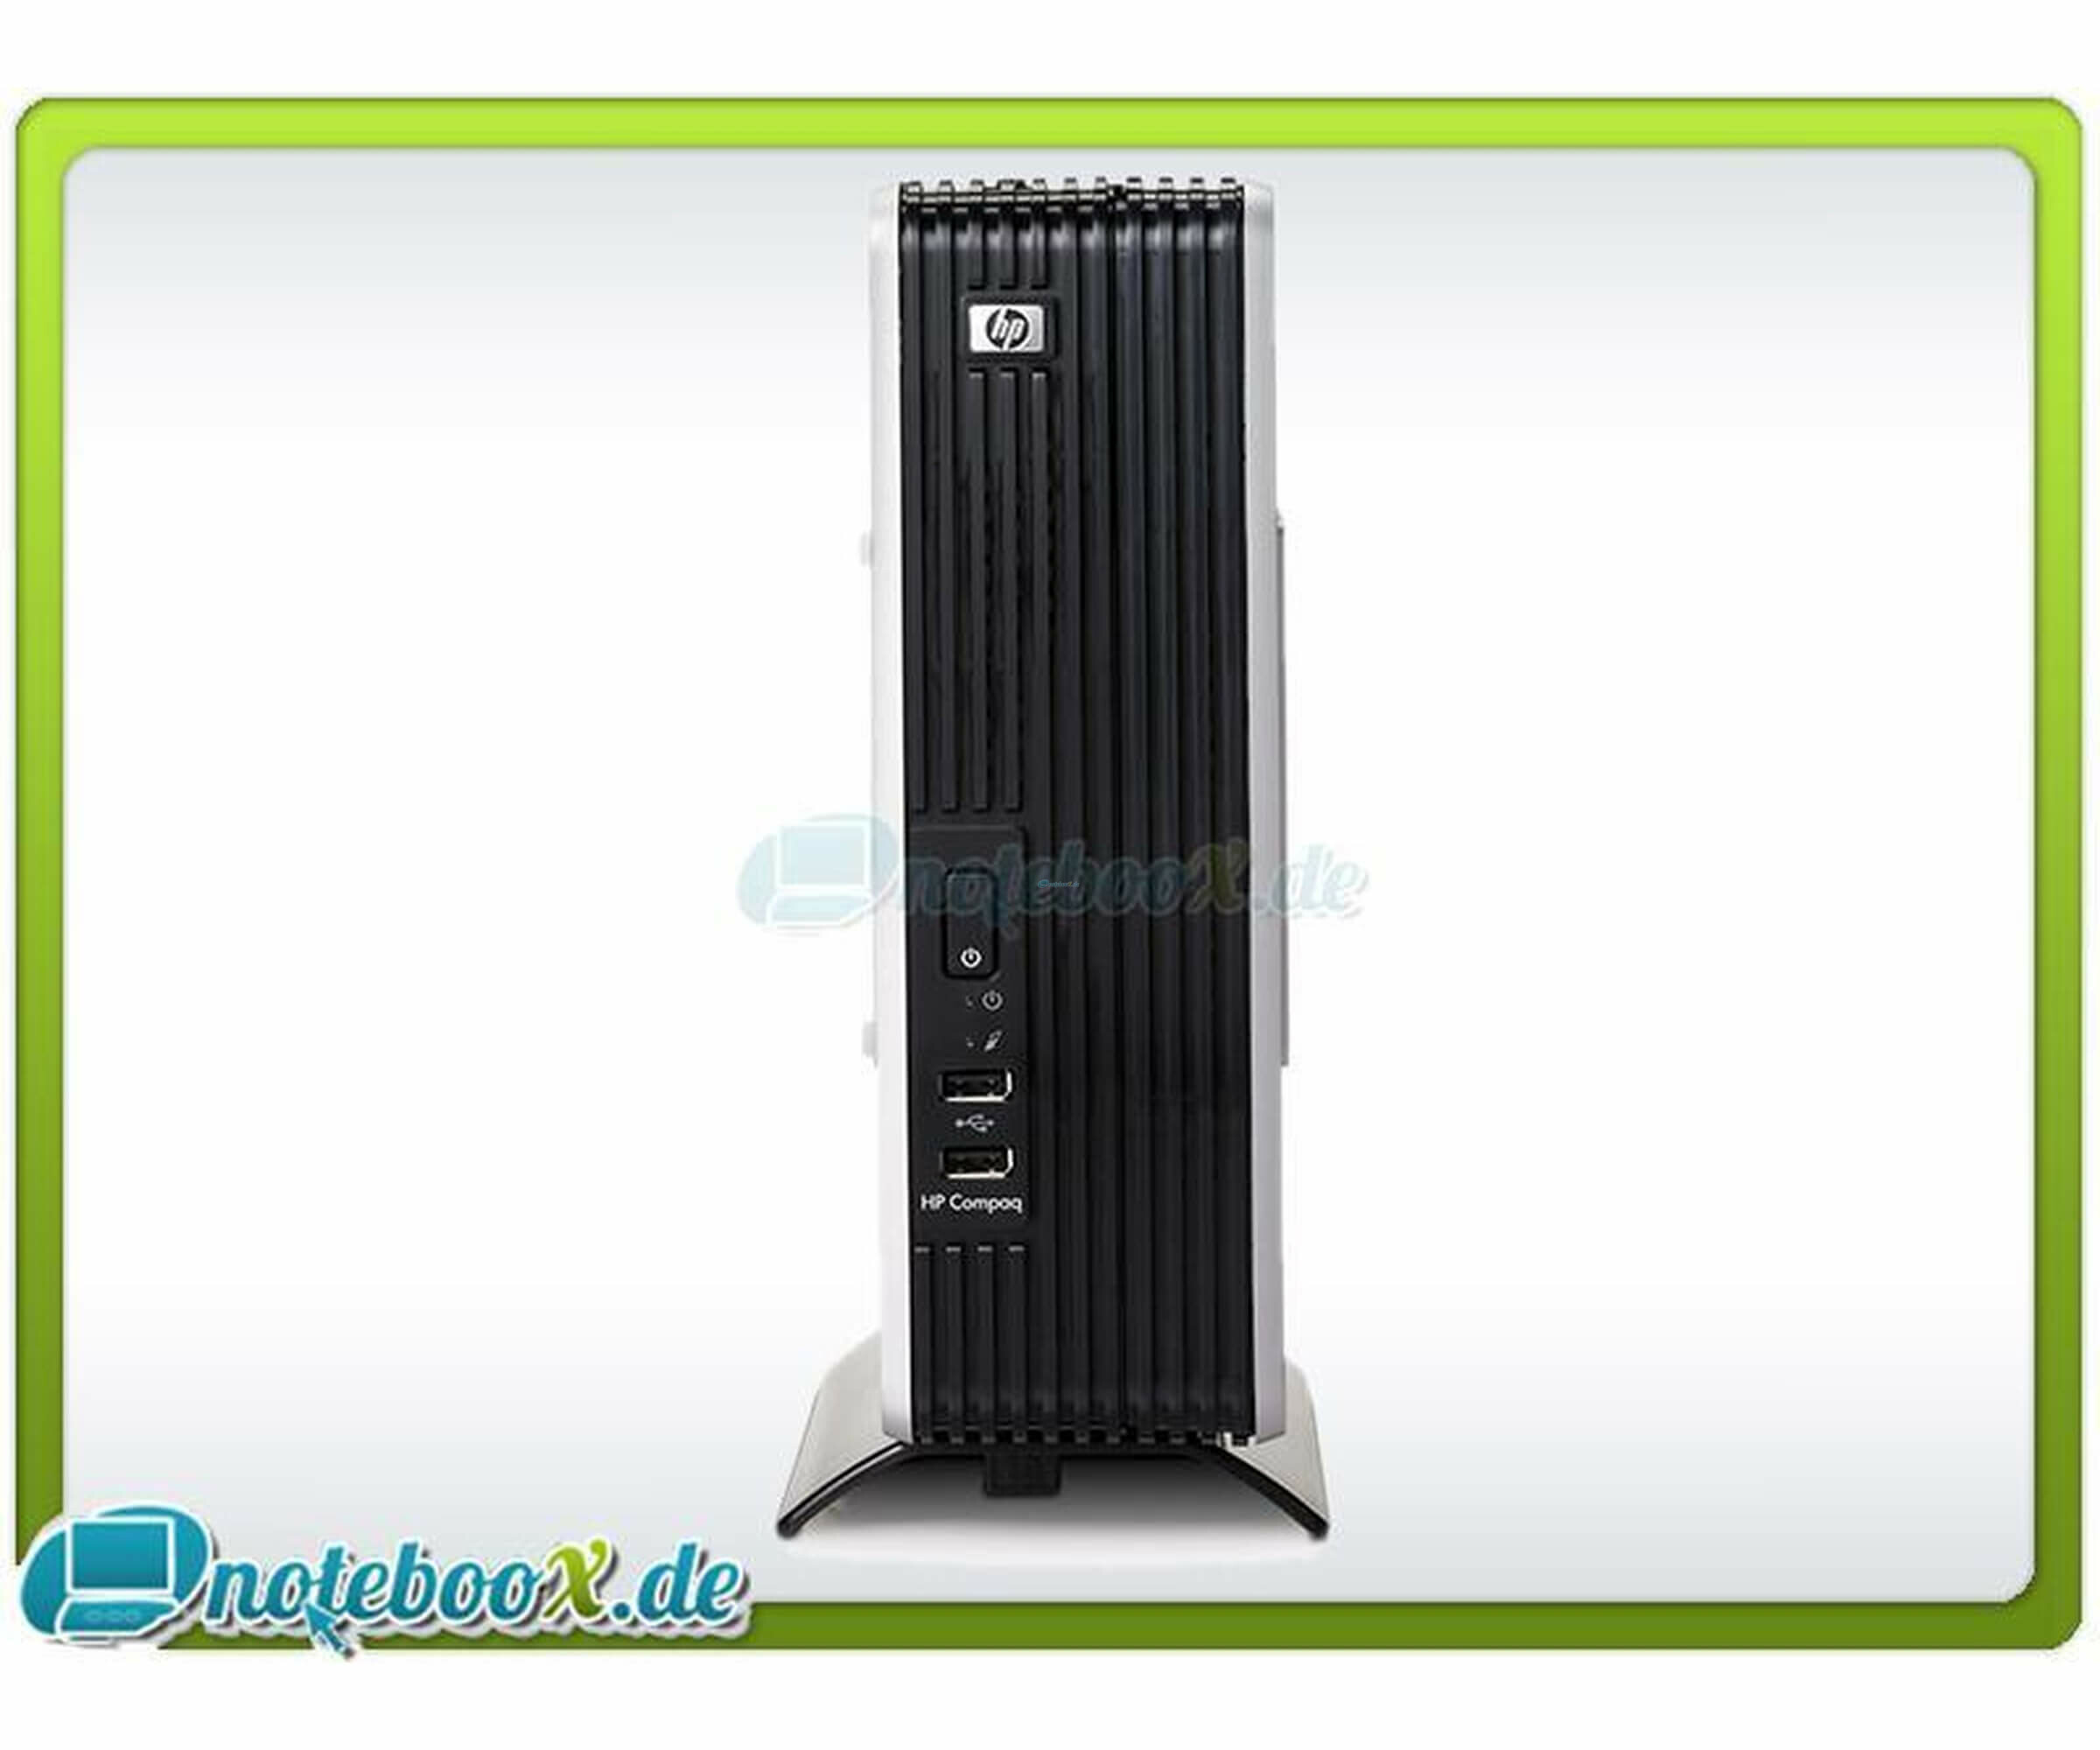 HP Compaq Thin Client t5720 - Tower - 1 GHz - RAM 256 MB - Win XP Embedded - Gebraucht